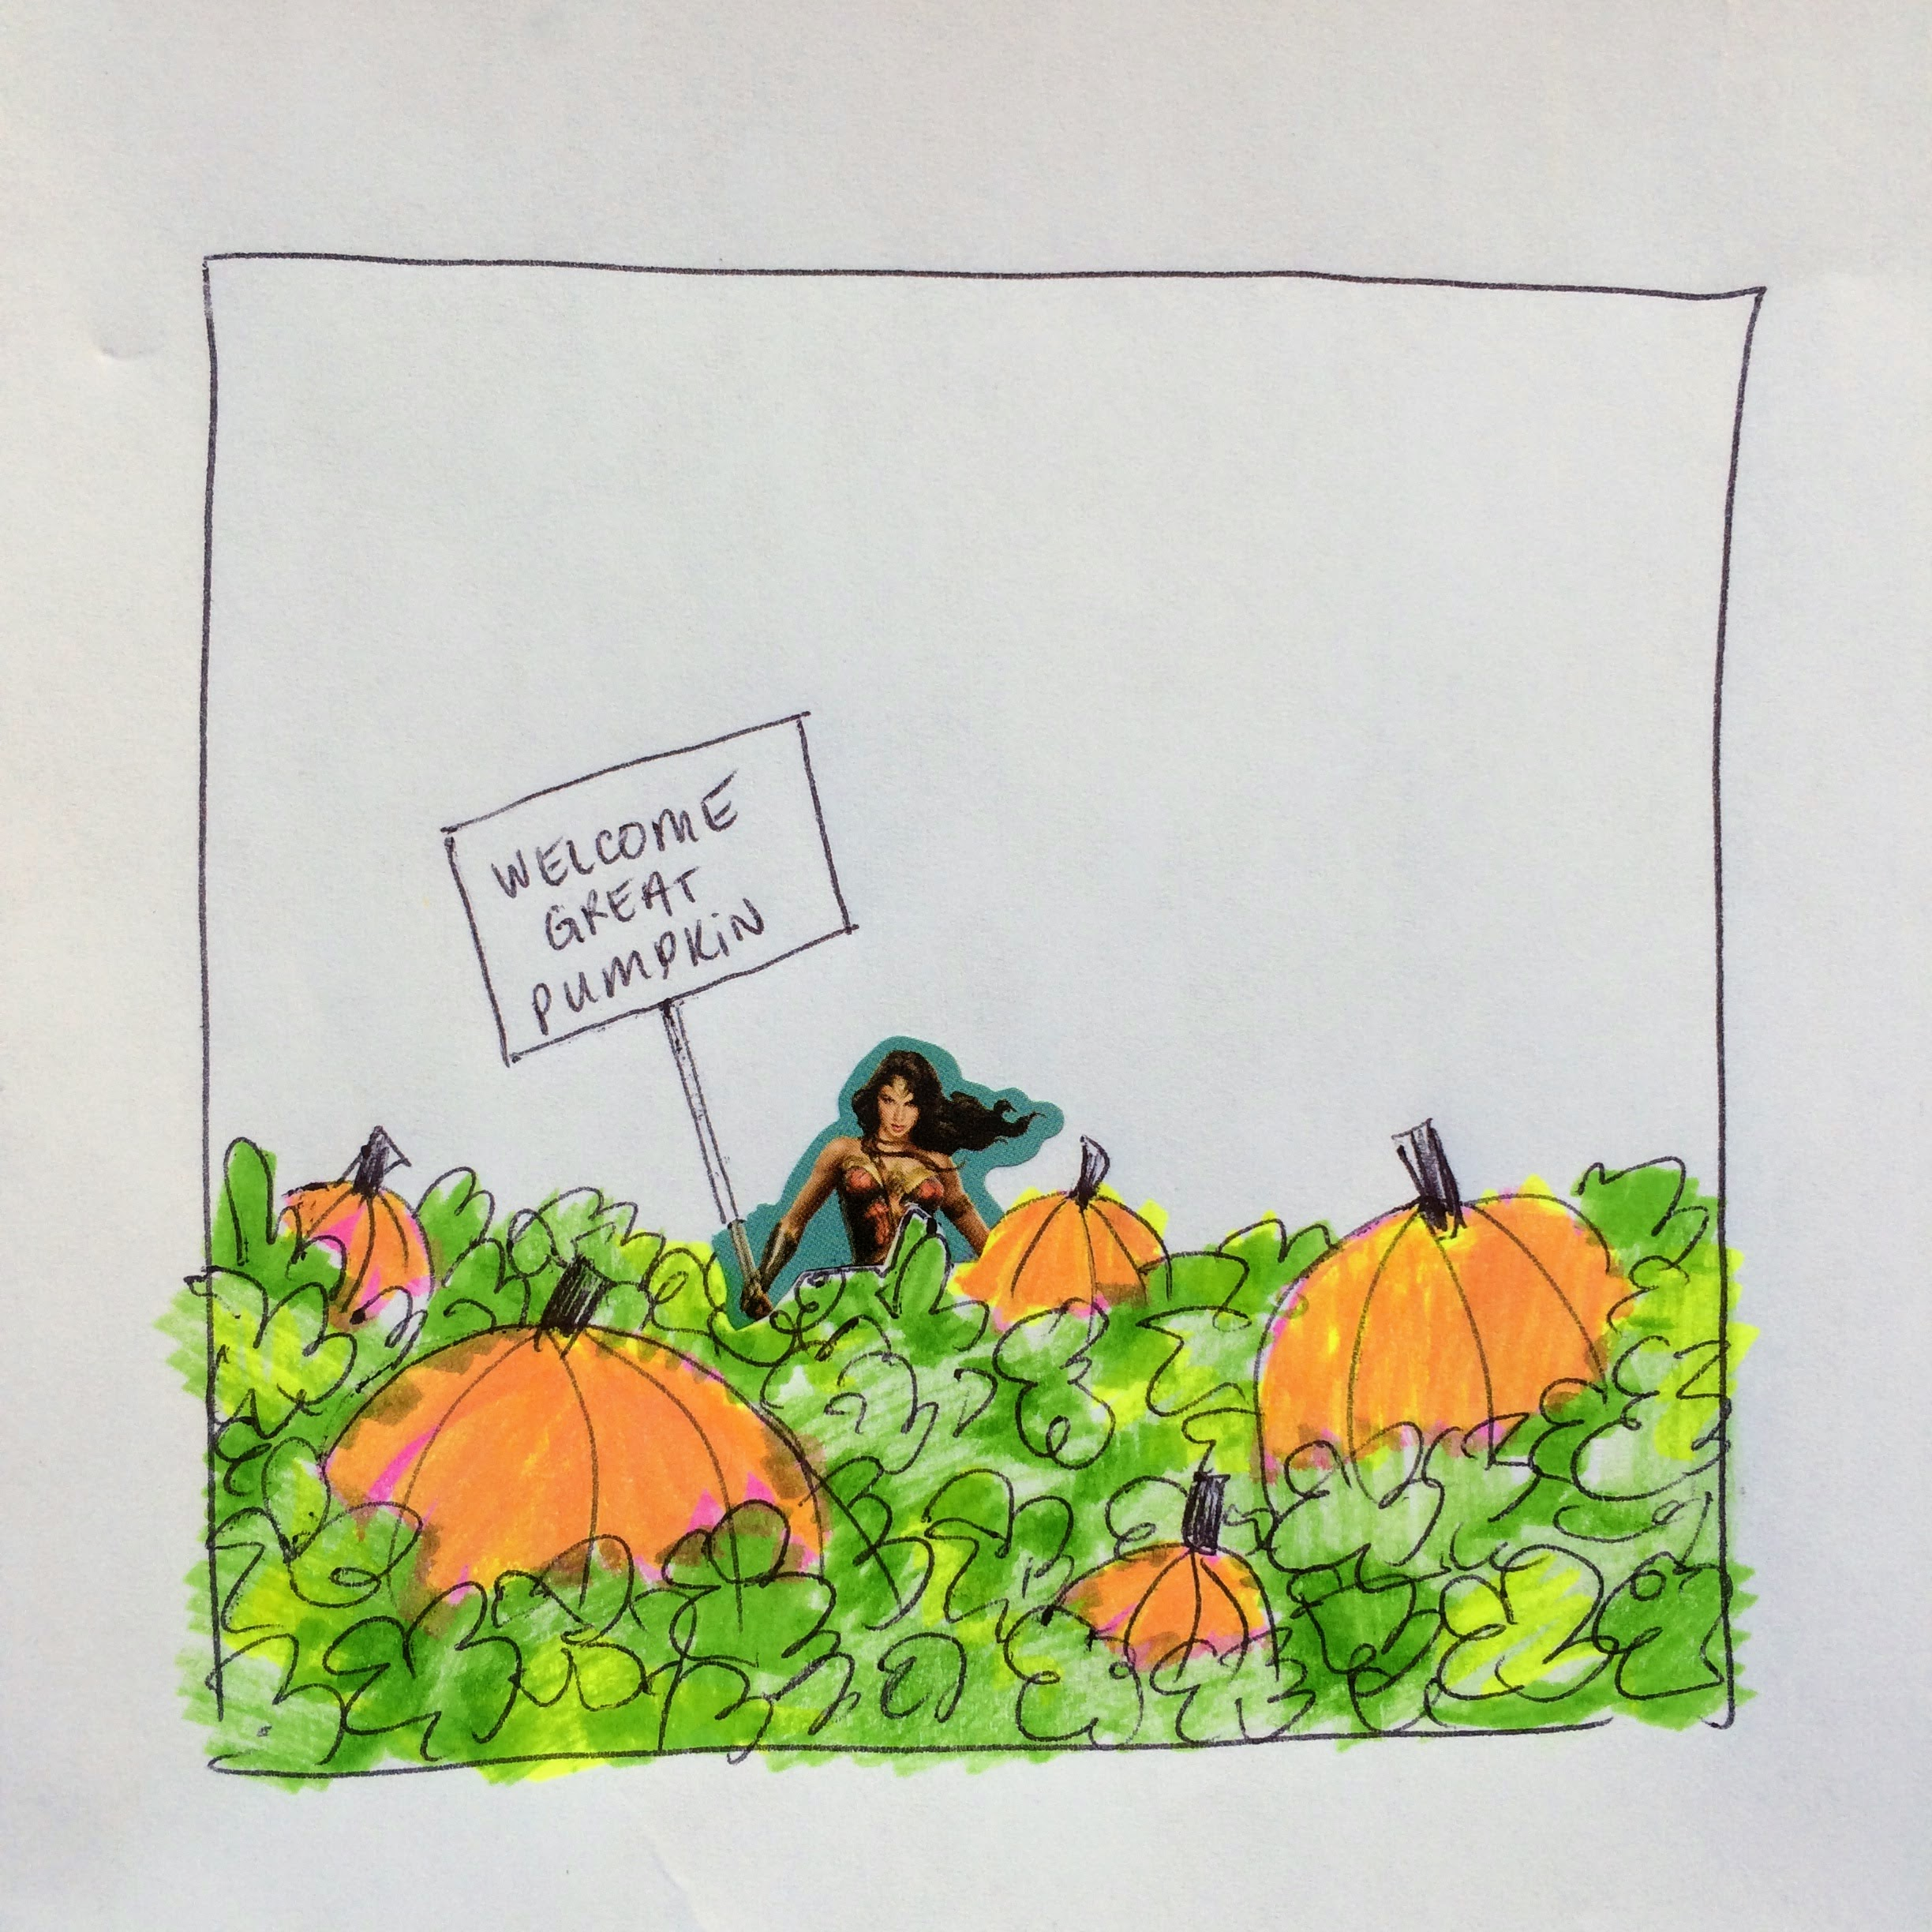 74. October 6, 2017 - Welcome Great Pumpkin